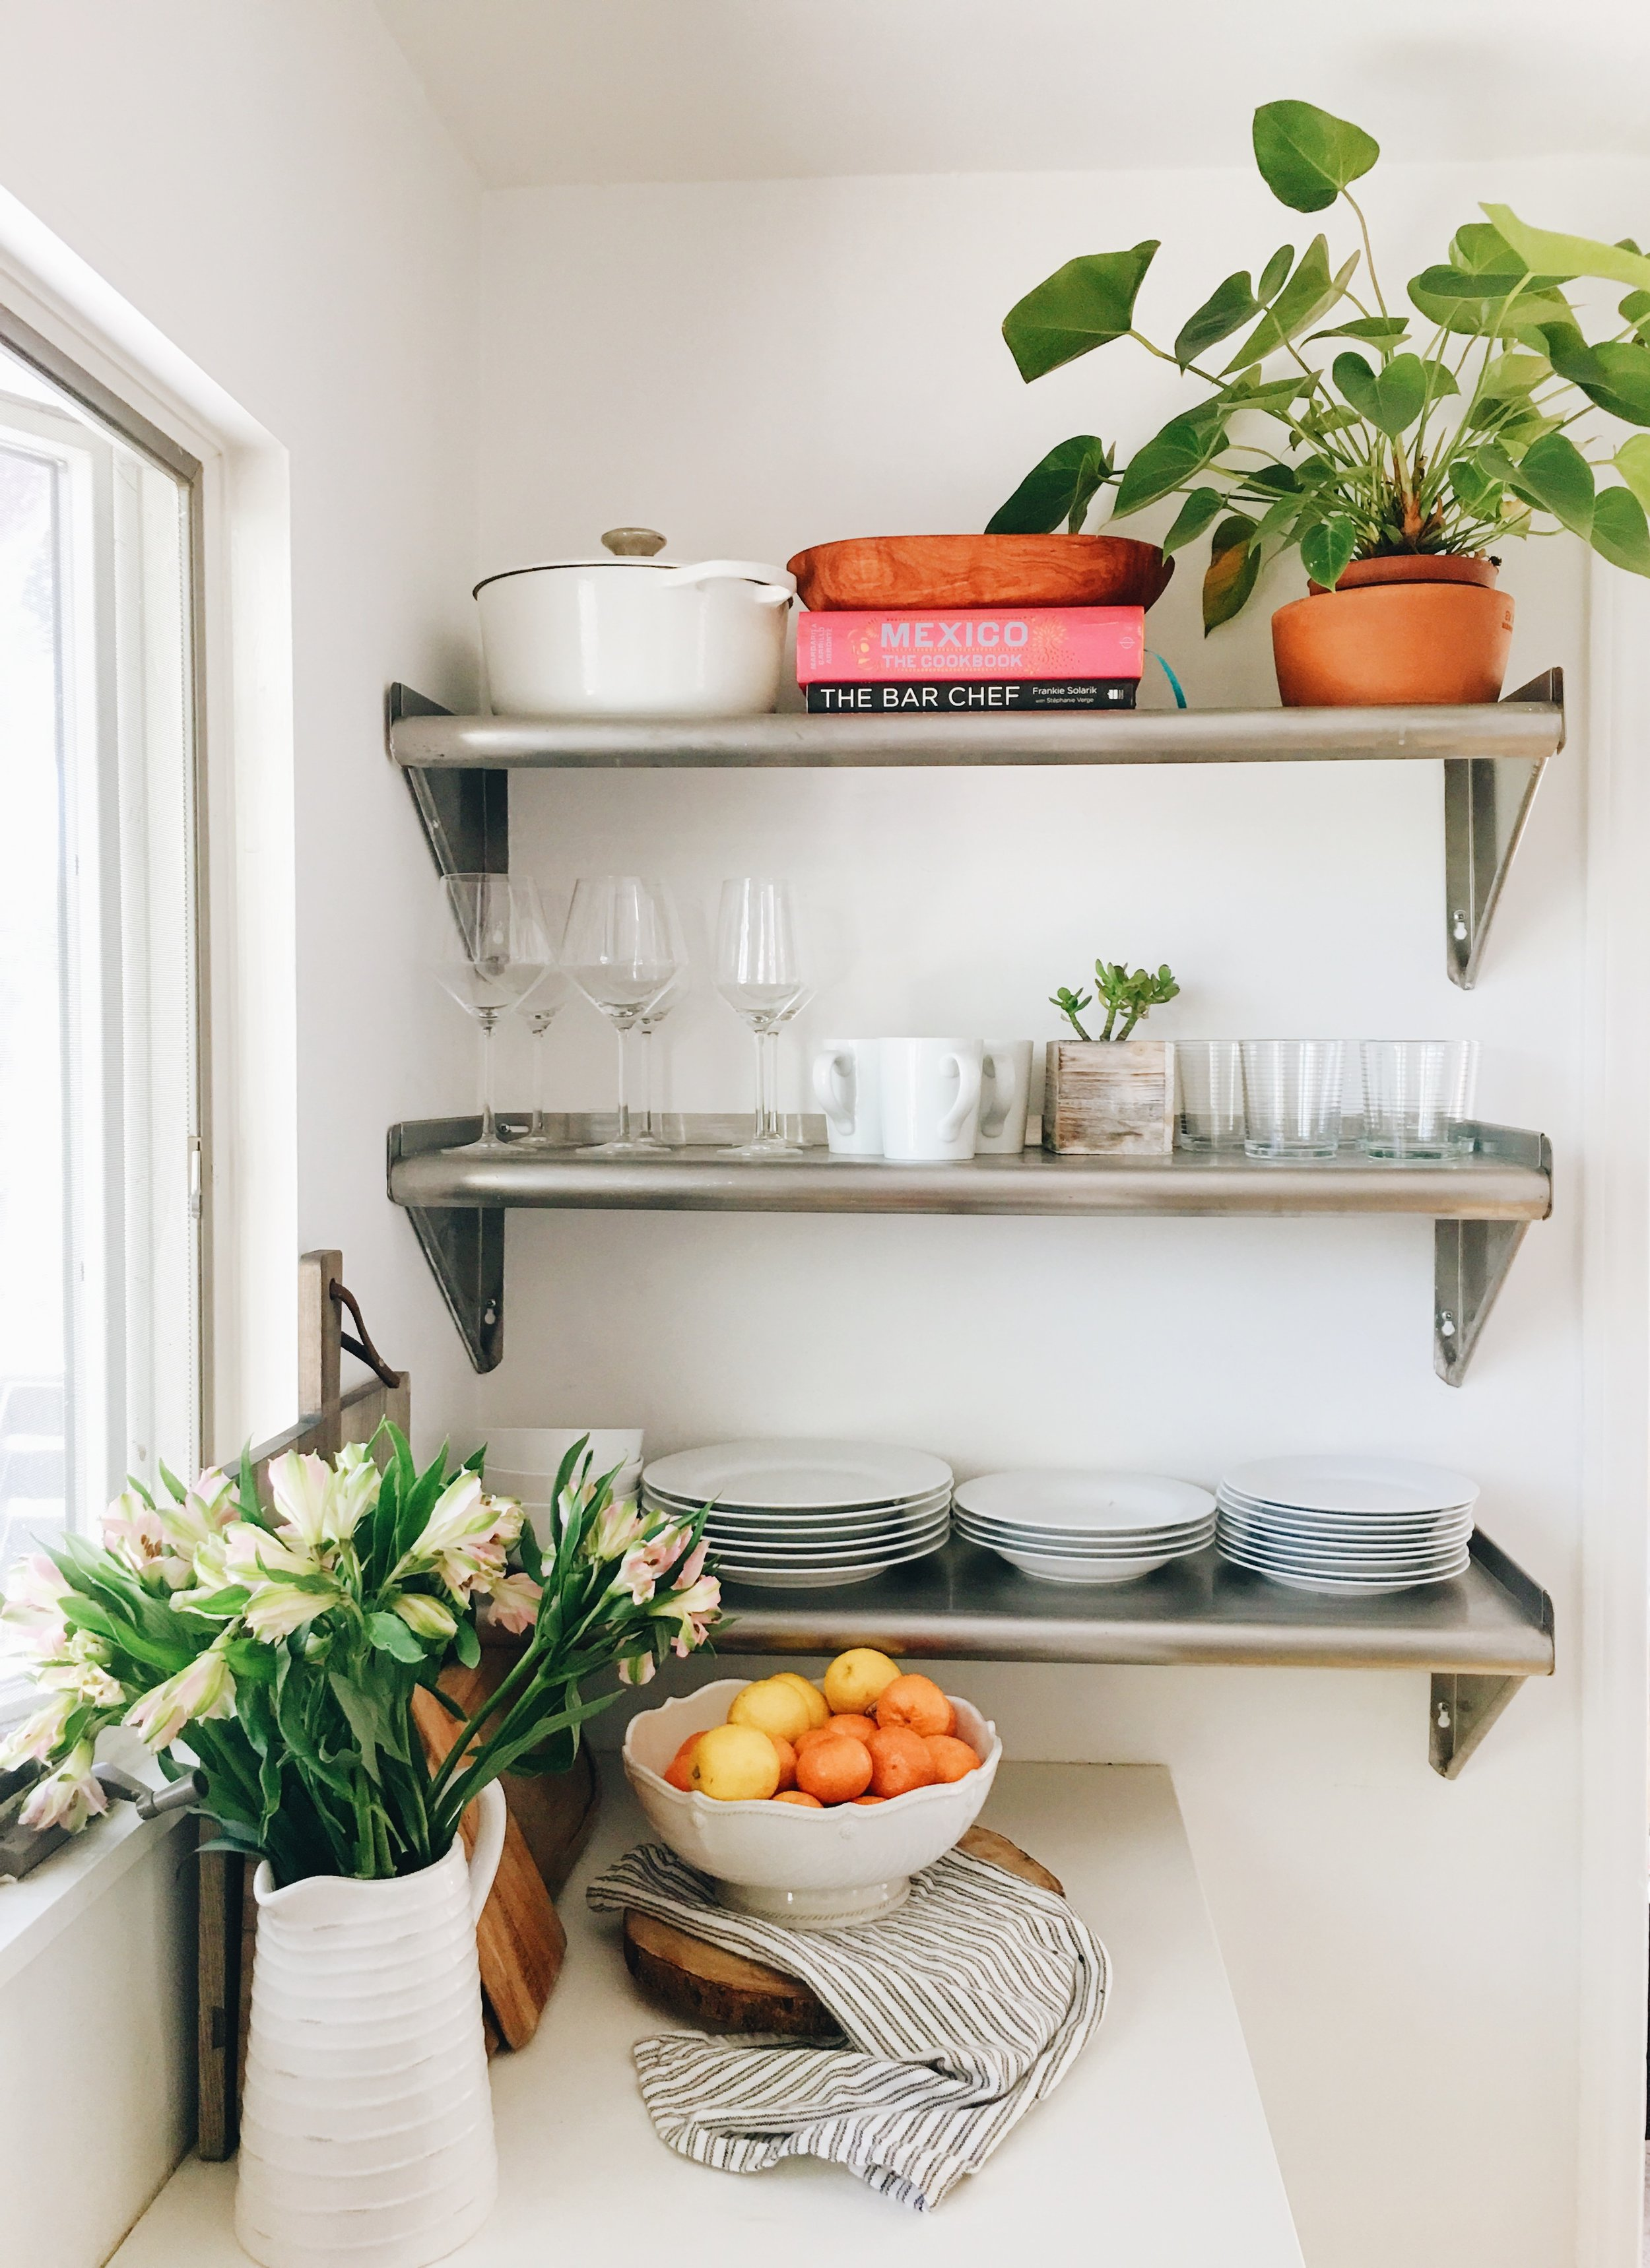 15 Tips For Successful Airbnb Hosting — Kelly Sue